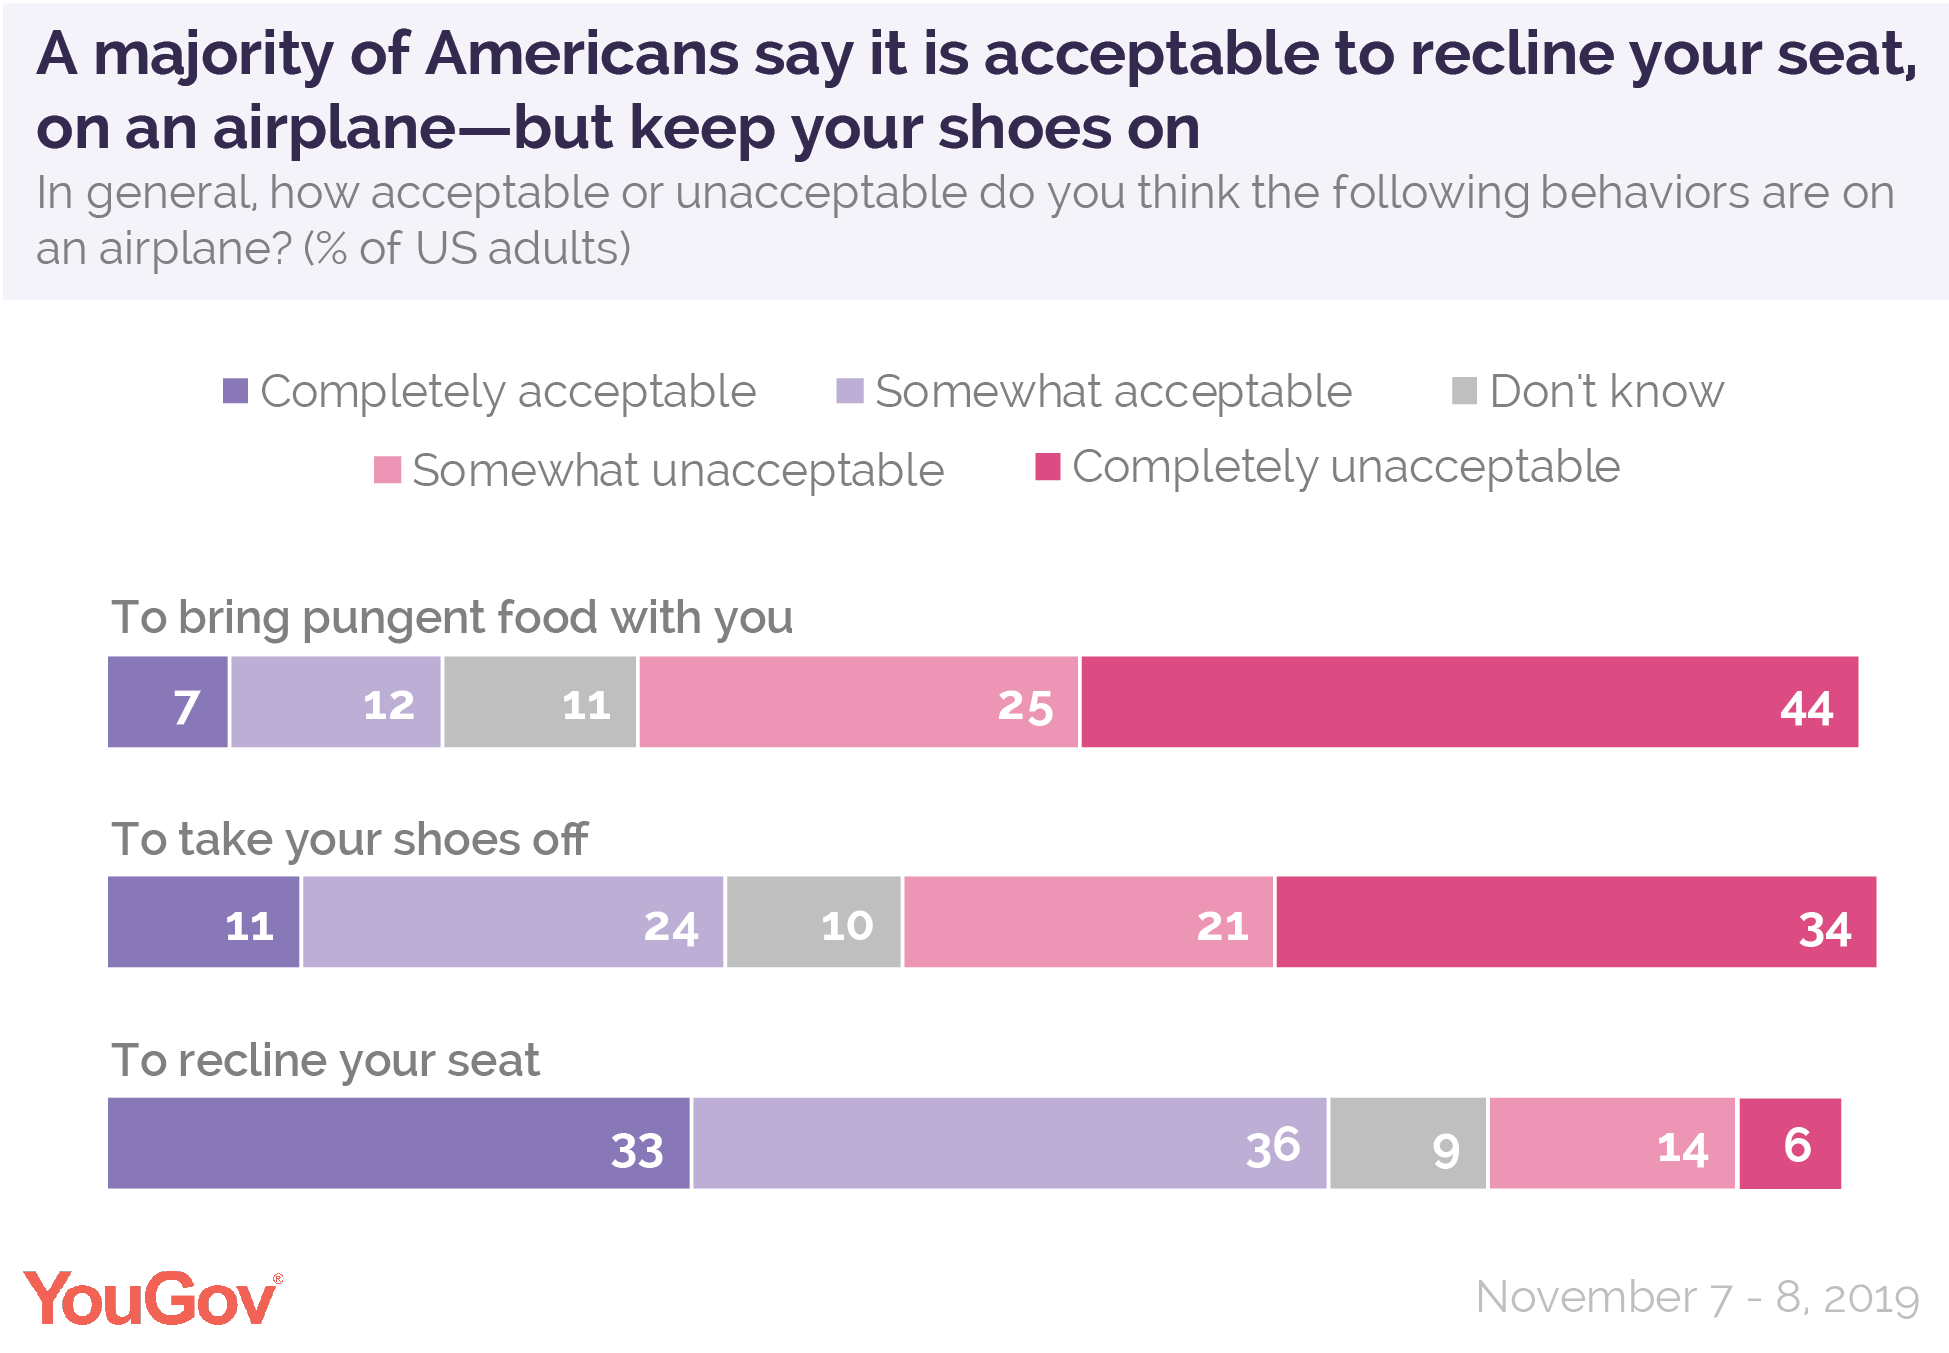 A majority of Americans say it's acceptable to recline your seat on an airplane, but keep your shoes on